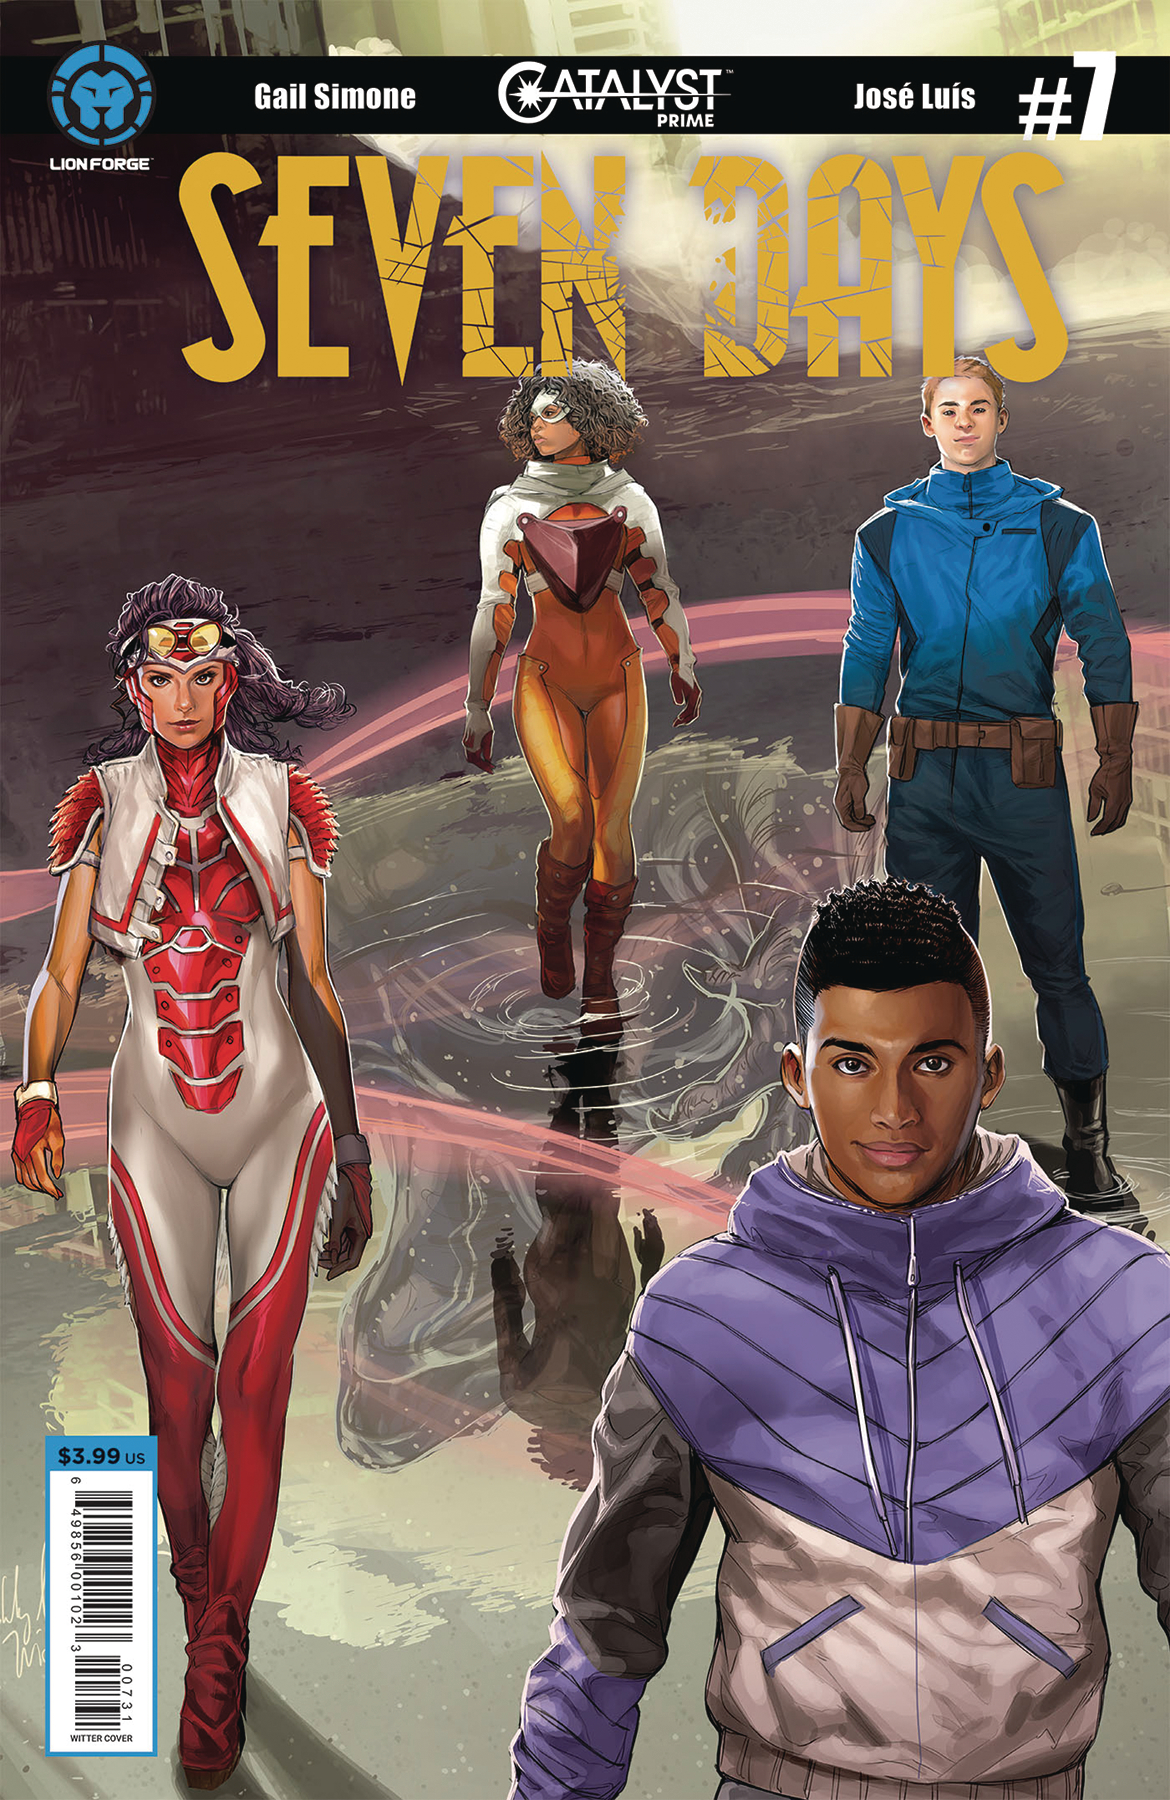 CATALYST PRIME SEVEN DAYS #7 (OF 7) CVR C SEJIC CONNECTING